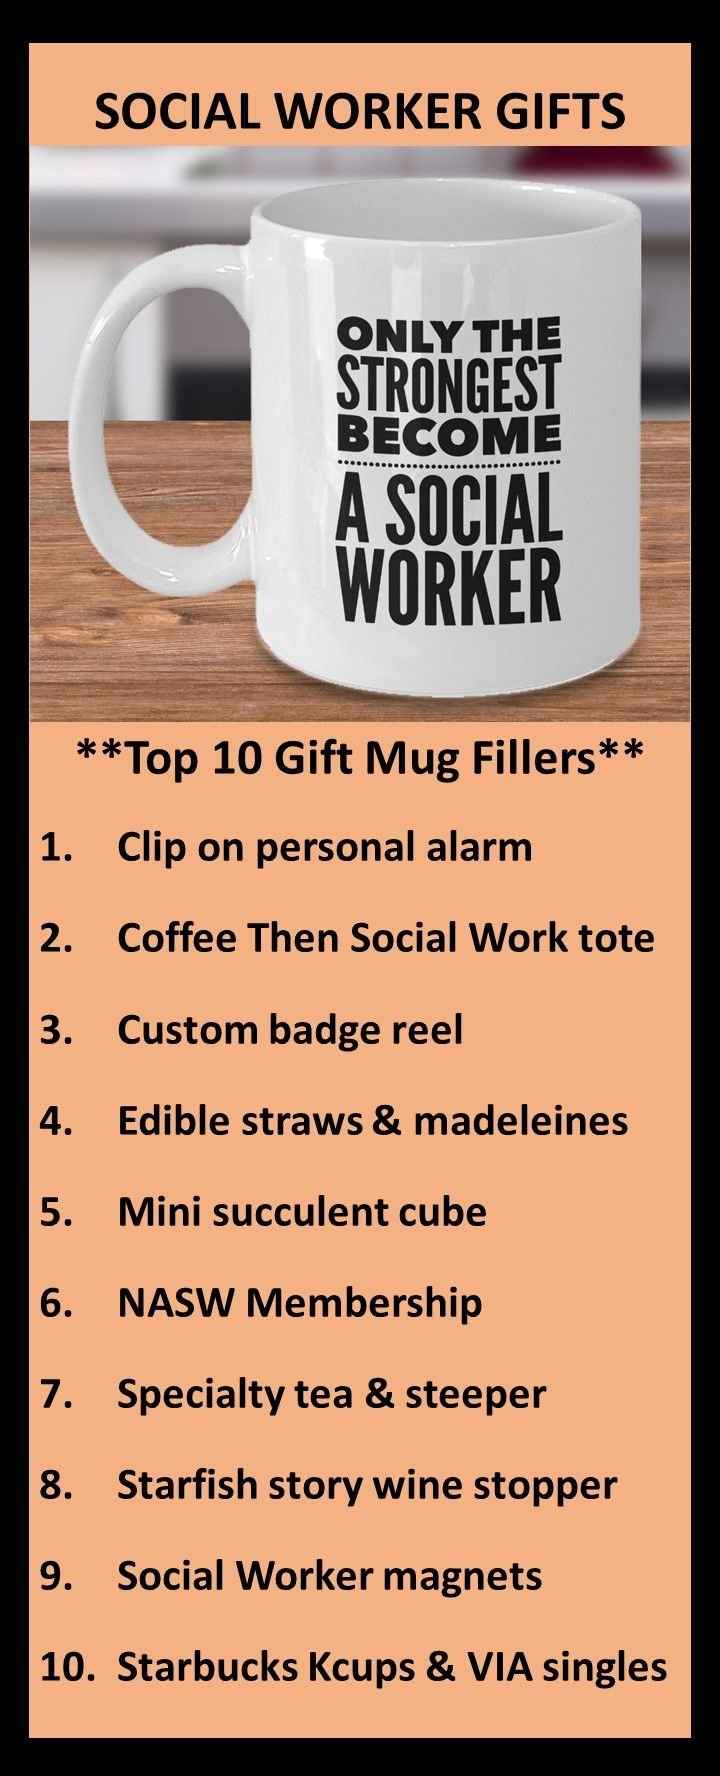 Social Worker Gifts Only The Strongest Become A Social Worker Birthday Gift Mug For Coffee Tea Social Worker Gifts Gifts In A Mug Mugs